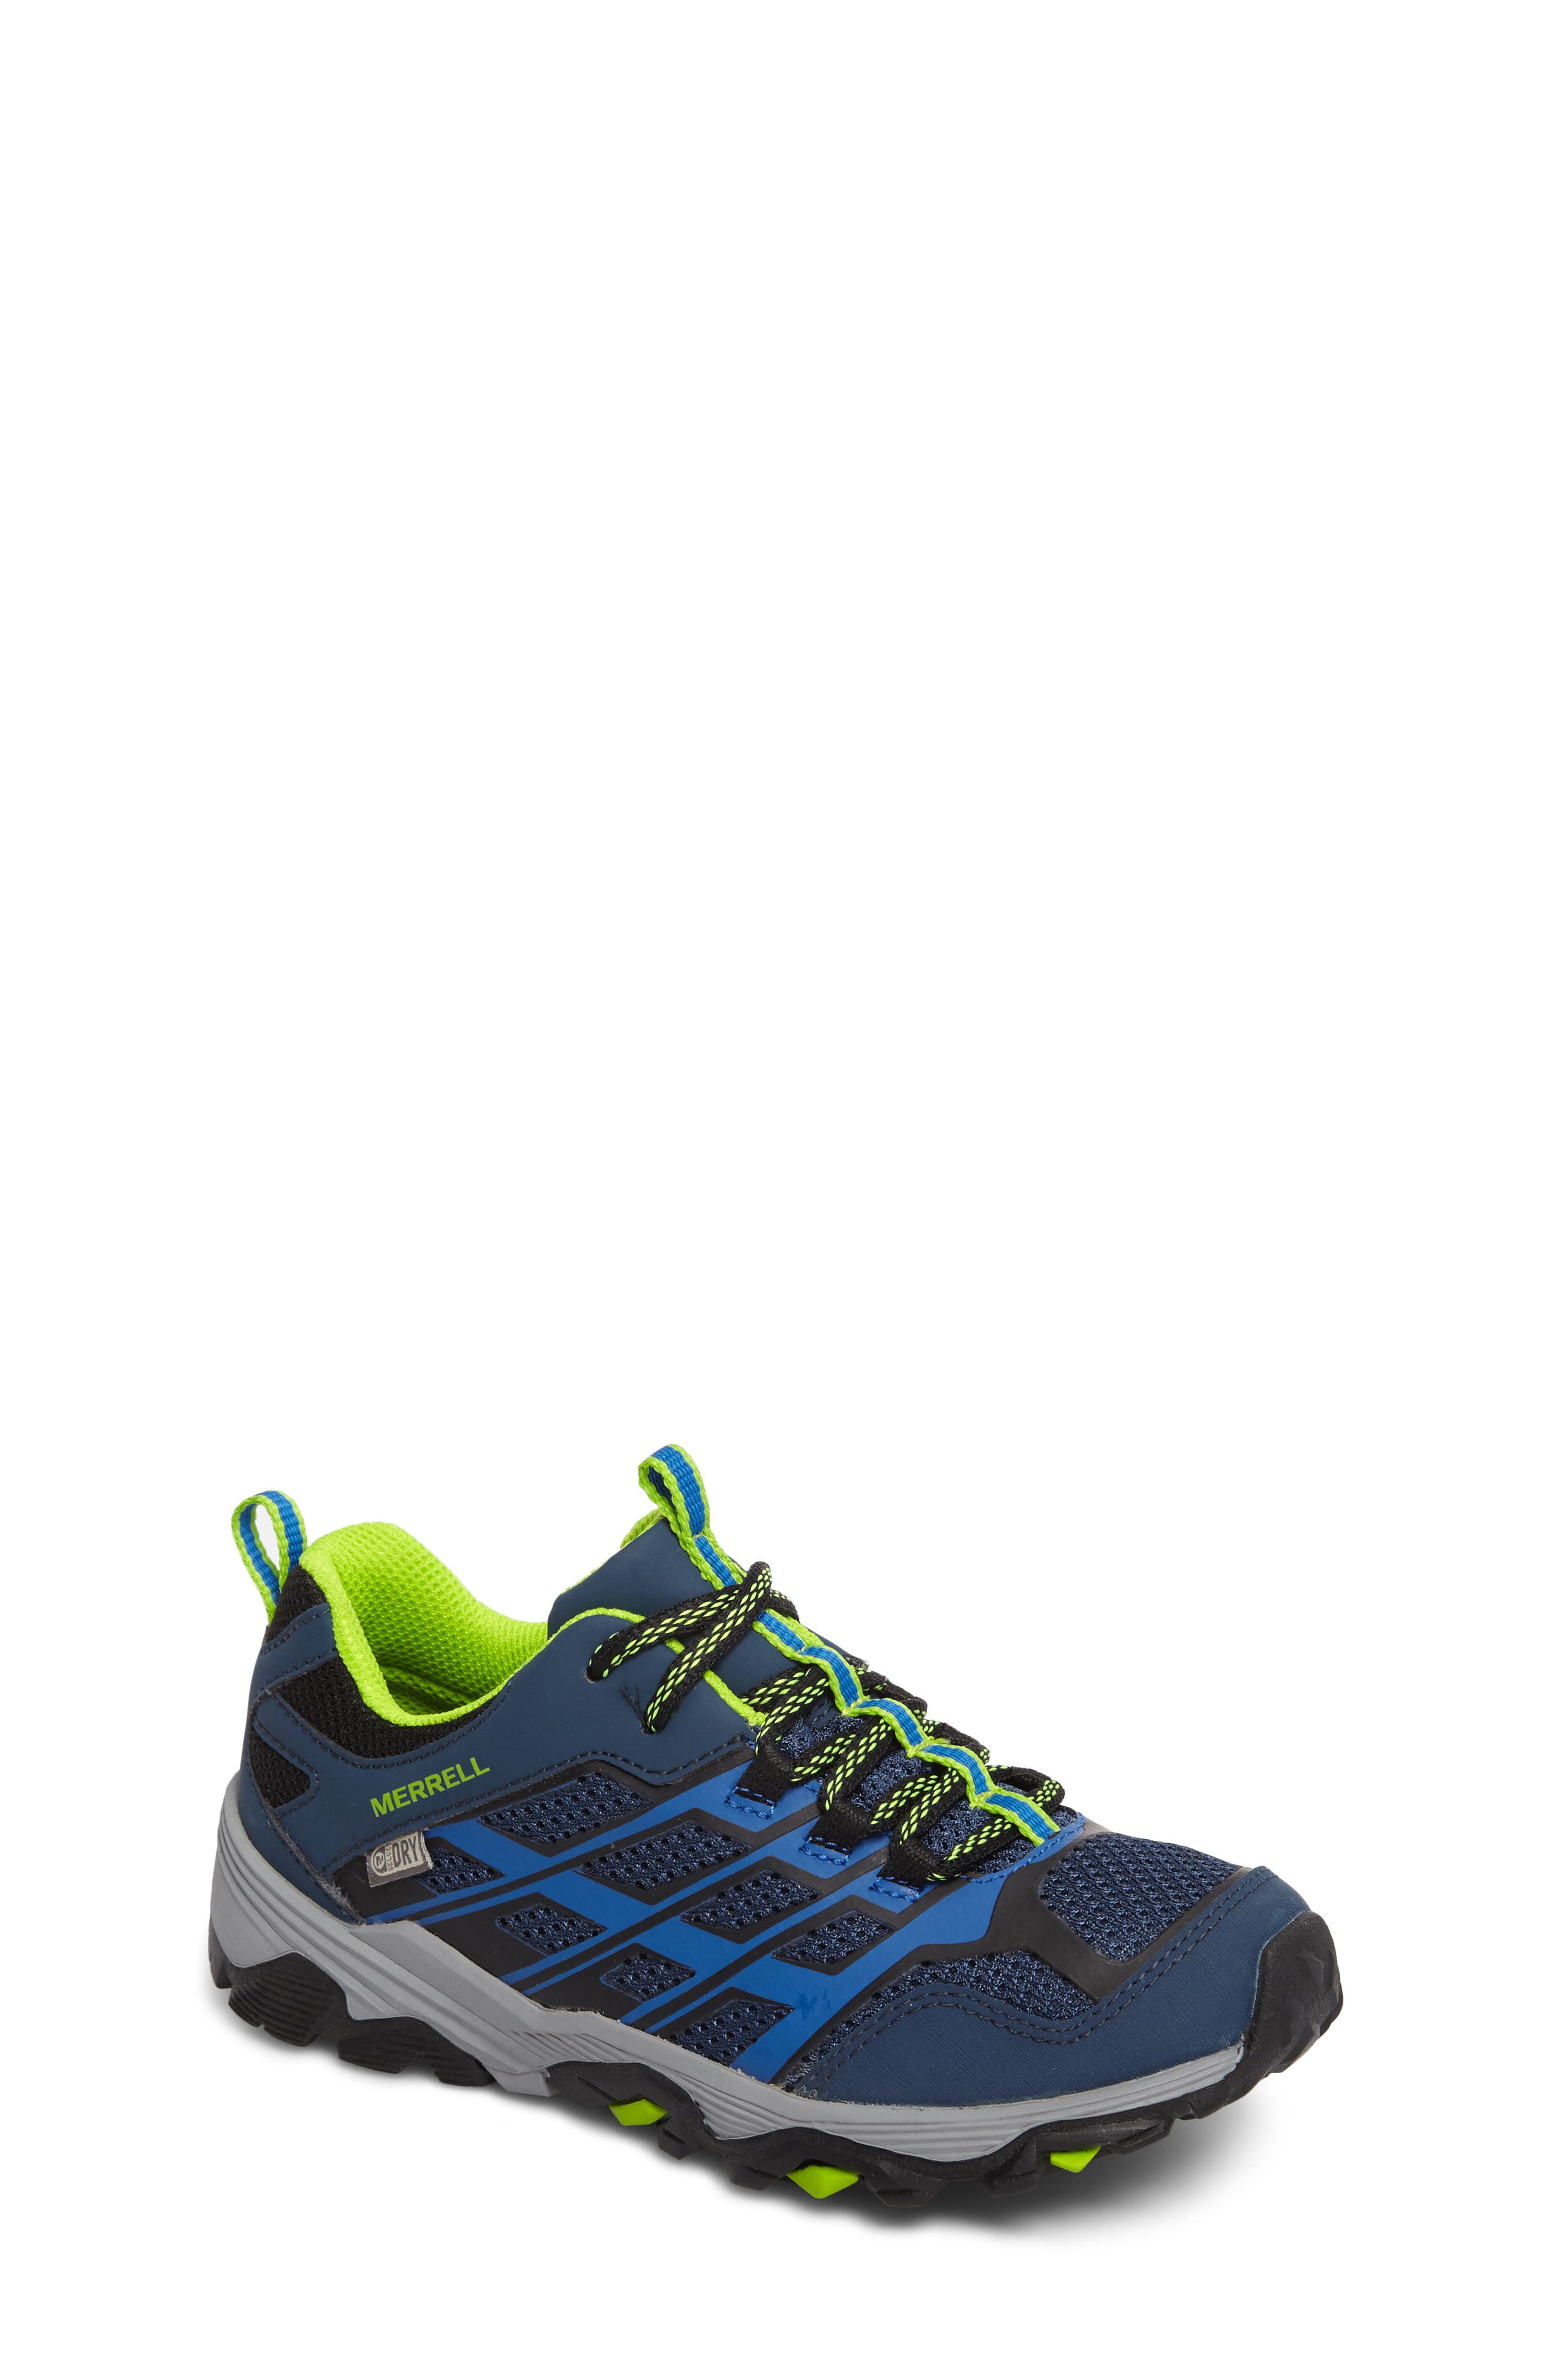 MERRELL, Moab FST Polar Low Waterproof Sneaker, Main thumbnail 1, color, NAVY/ BLUE